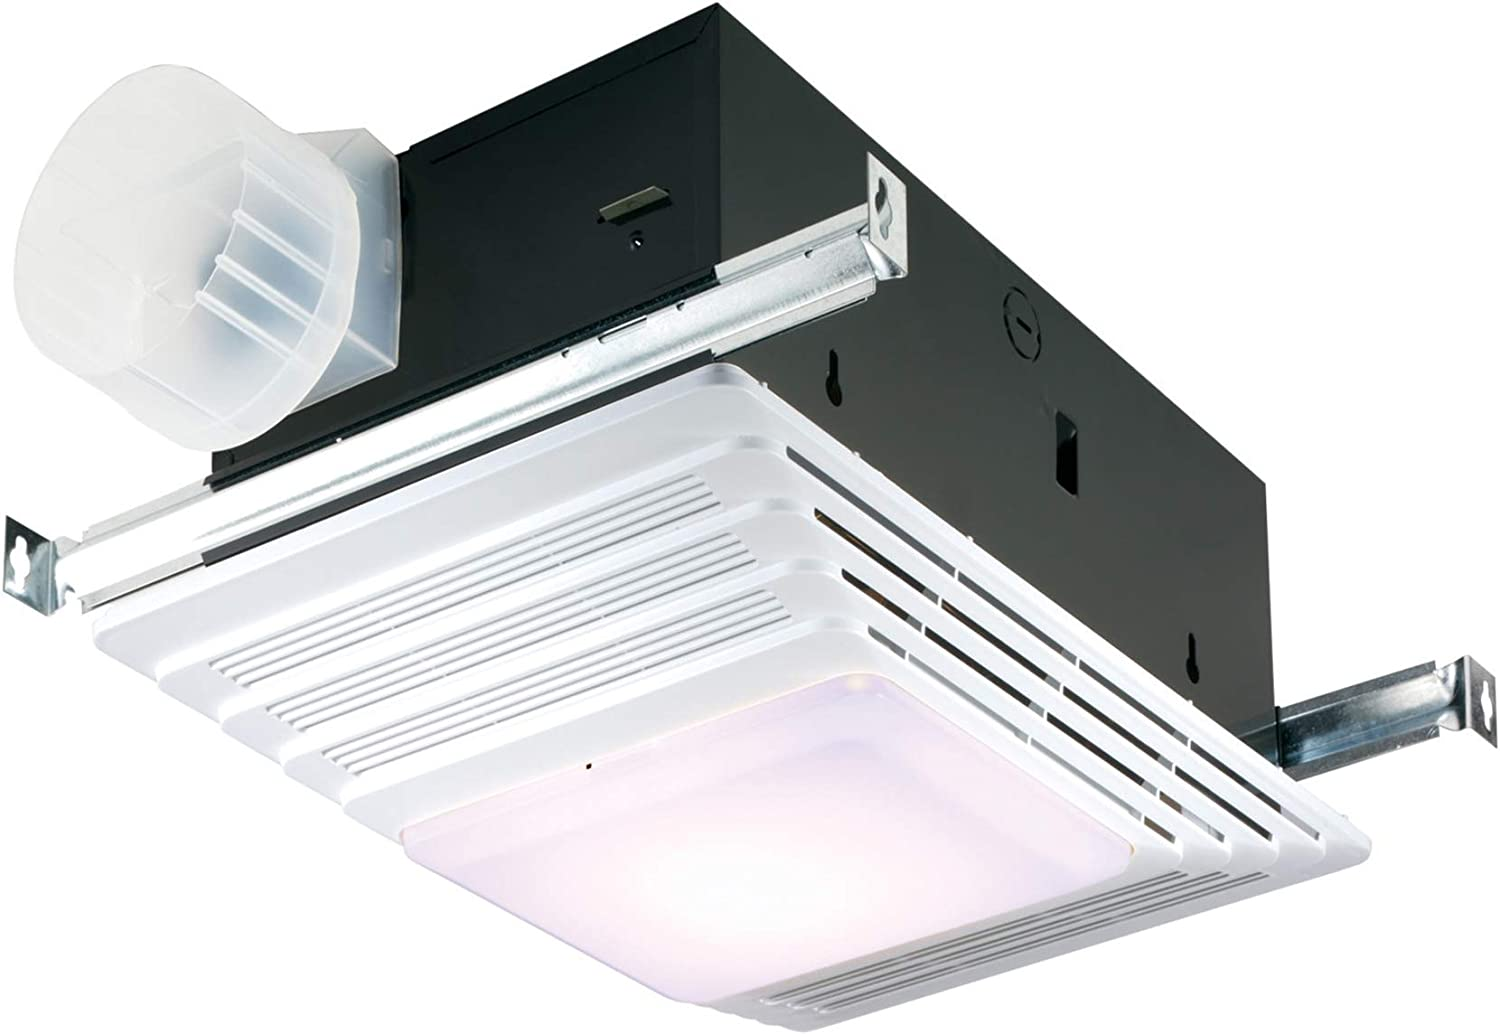 Broan Nutone 655 Bath Fan And Light With Heater 70 Cfm 4 0 Sones White Plastic Grille Built In Household Ventilation Fans Amazon Com